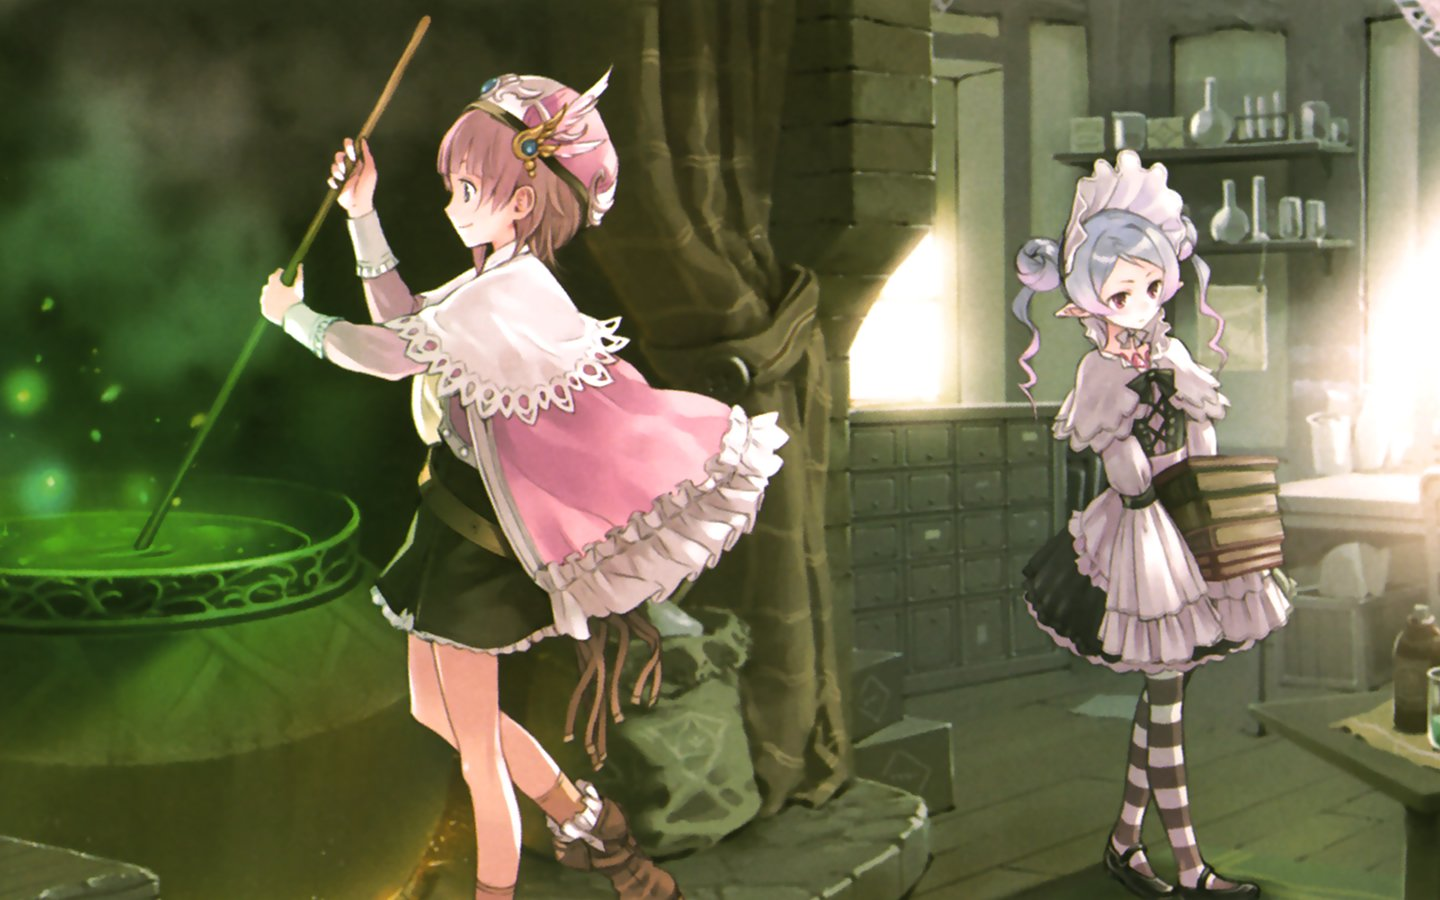 Atelier Rorona wallpaper   ForWallpapercom 1440x900